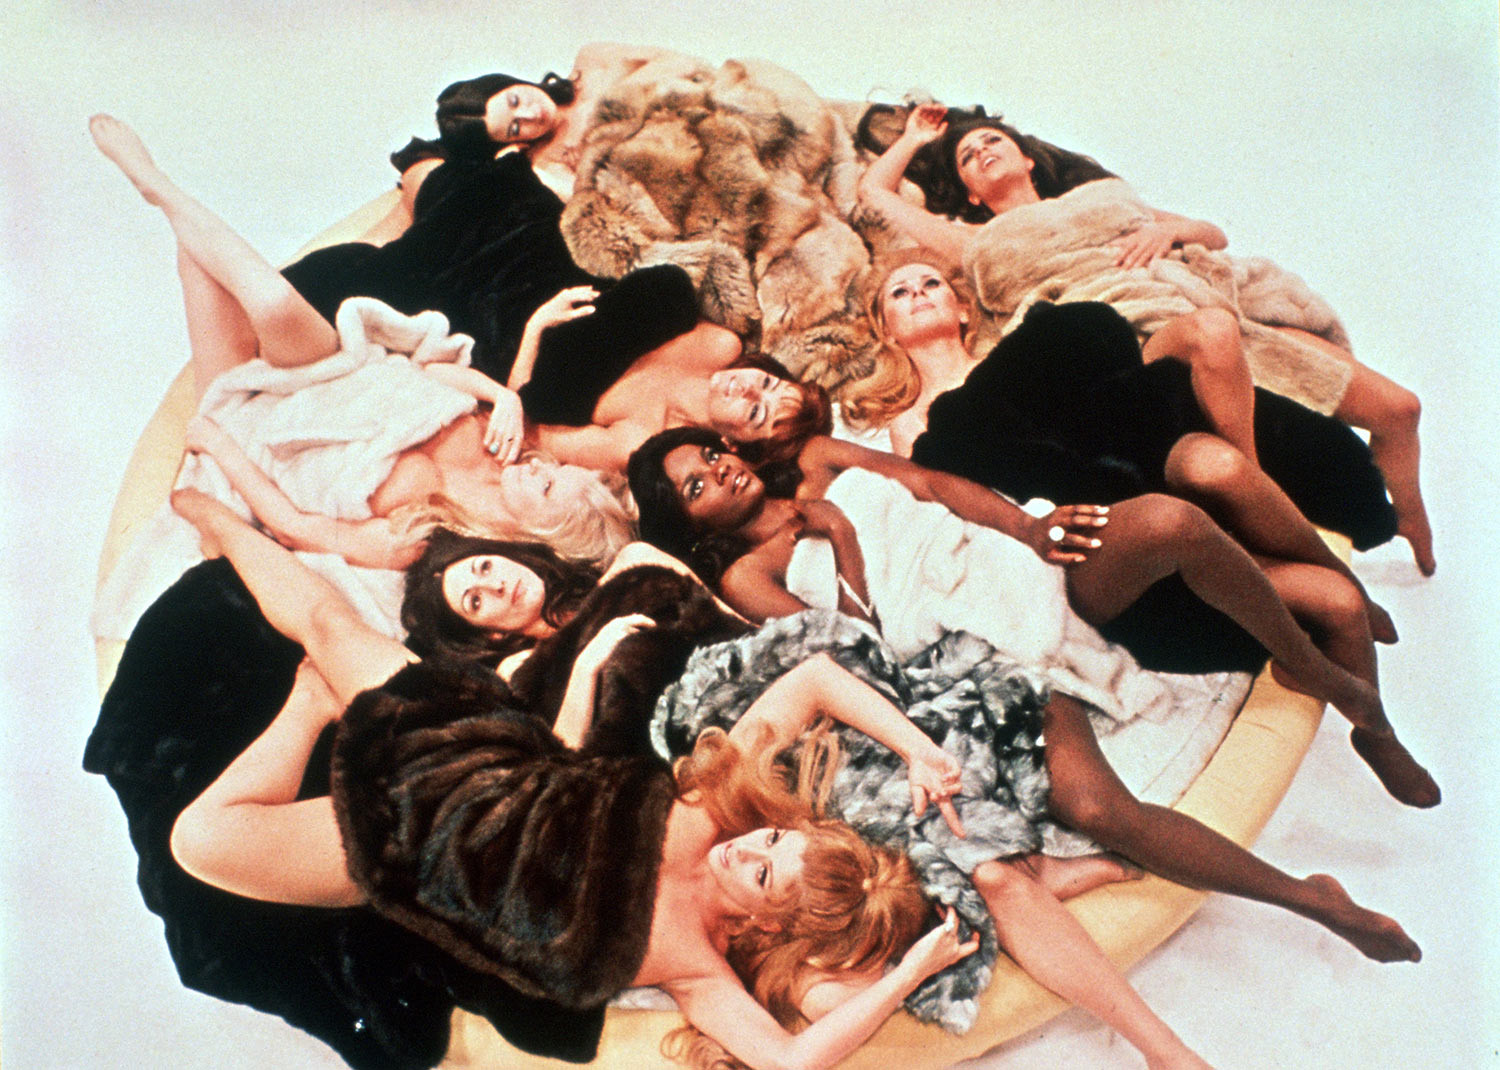 Beyond the Valley of the Dolls. 1970. USA. Directed by Russ Meyer. Courtesy of 20th Century Fox